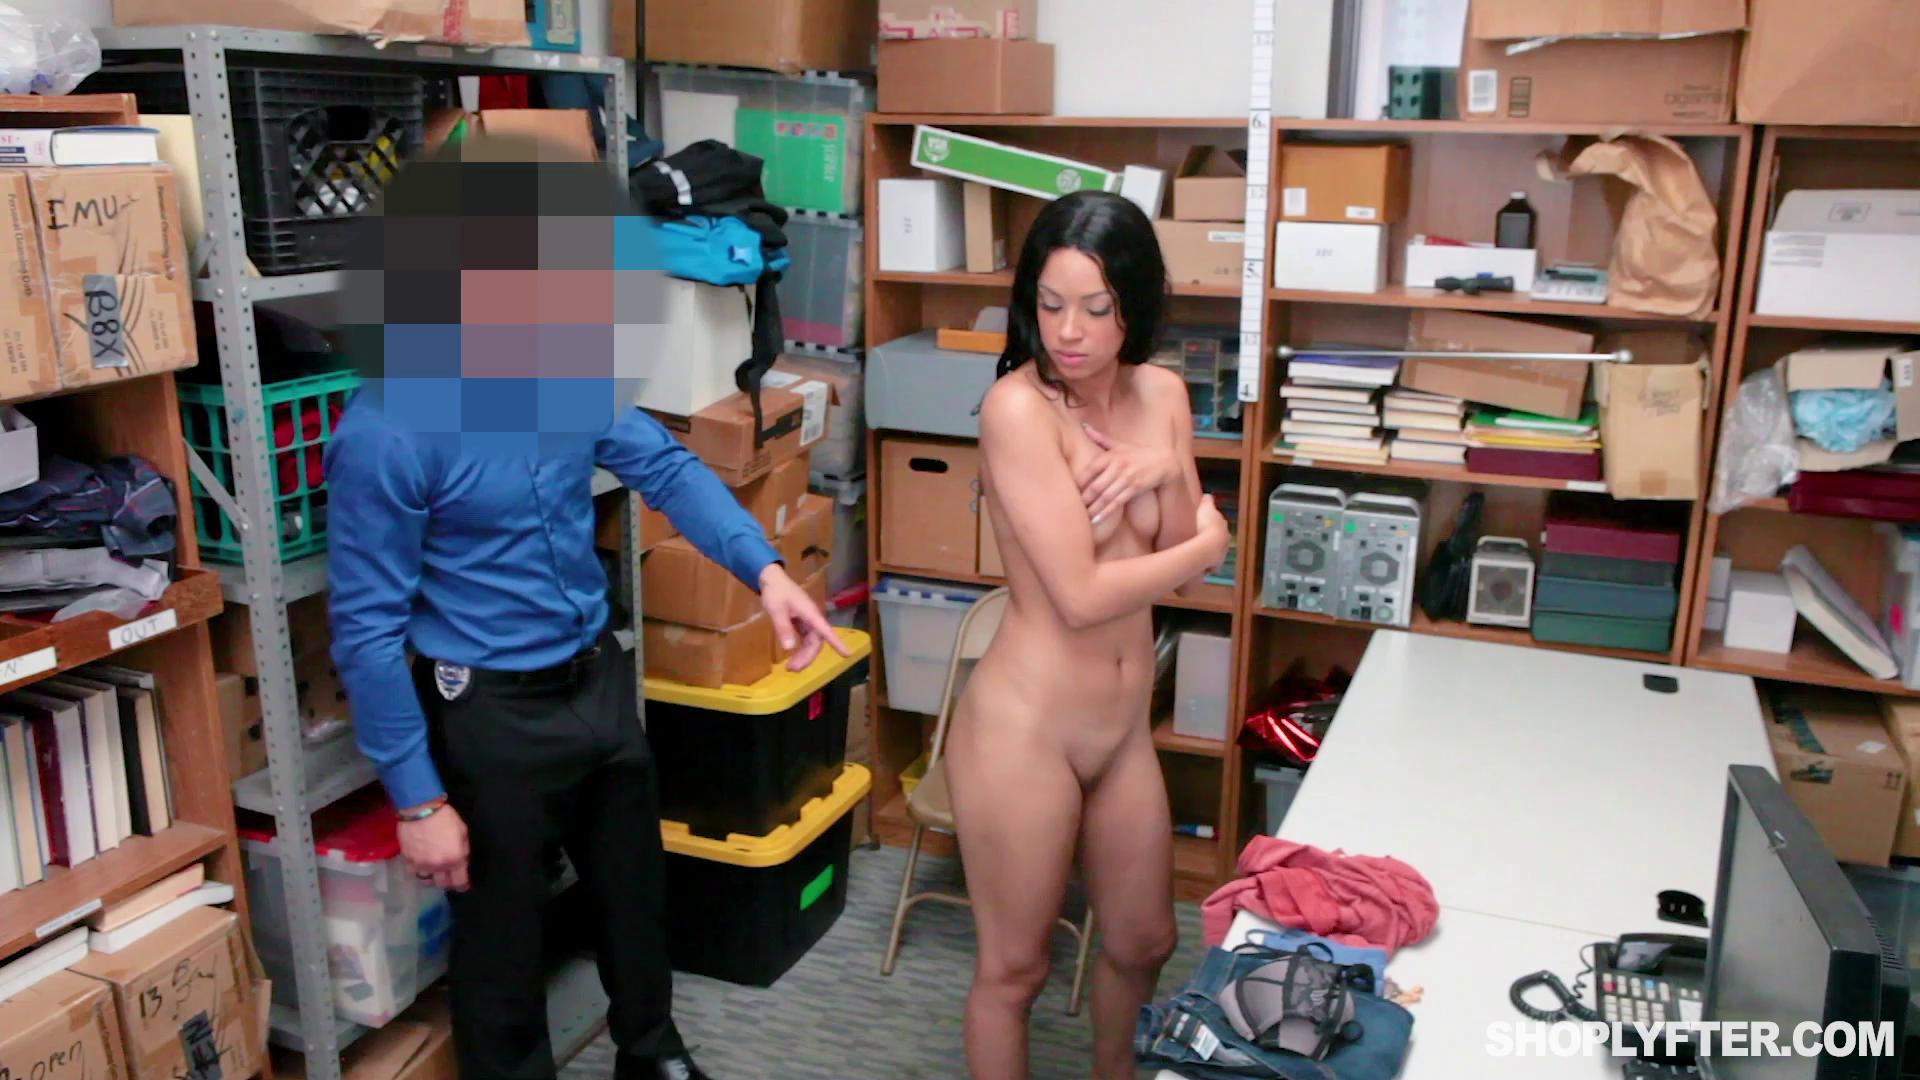 Shoplyfter – Amethyst Banks